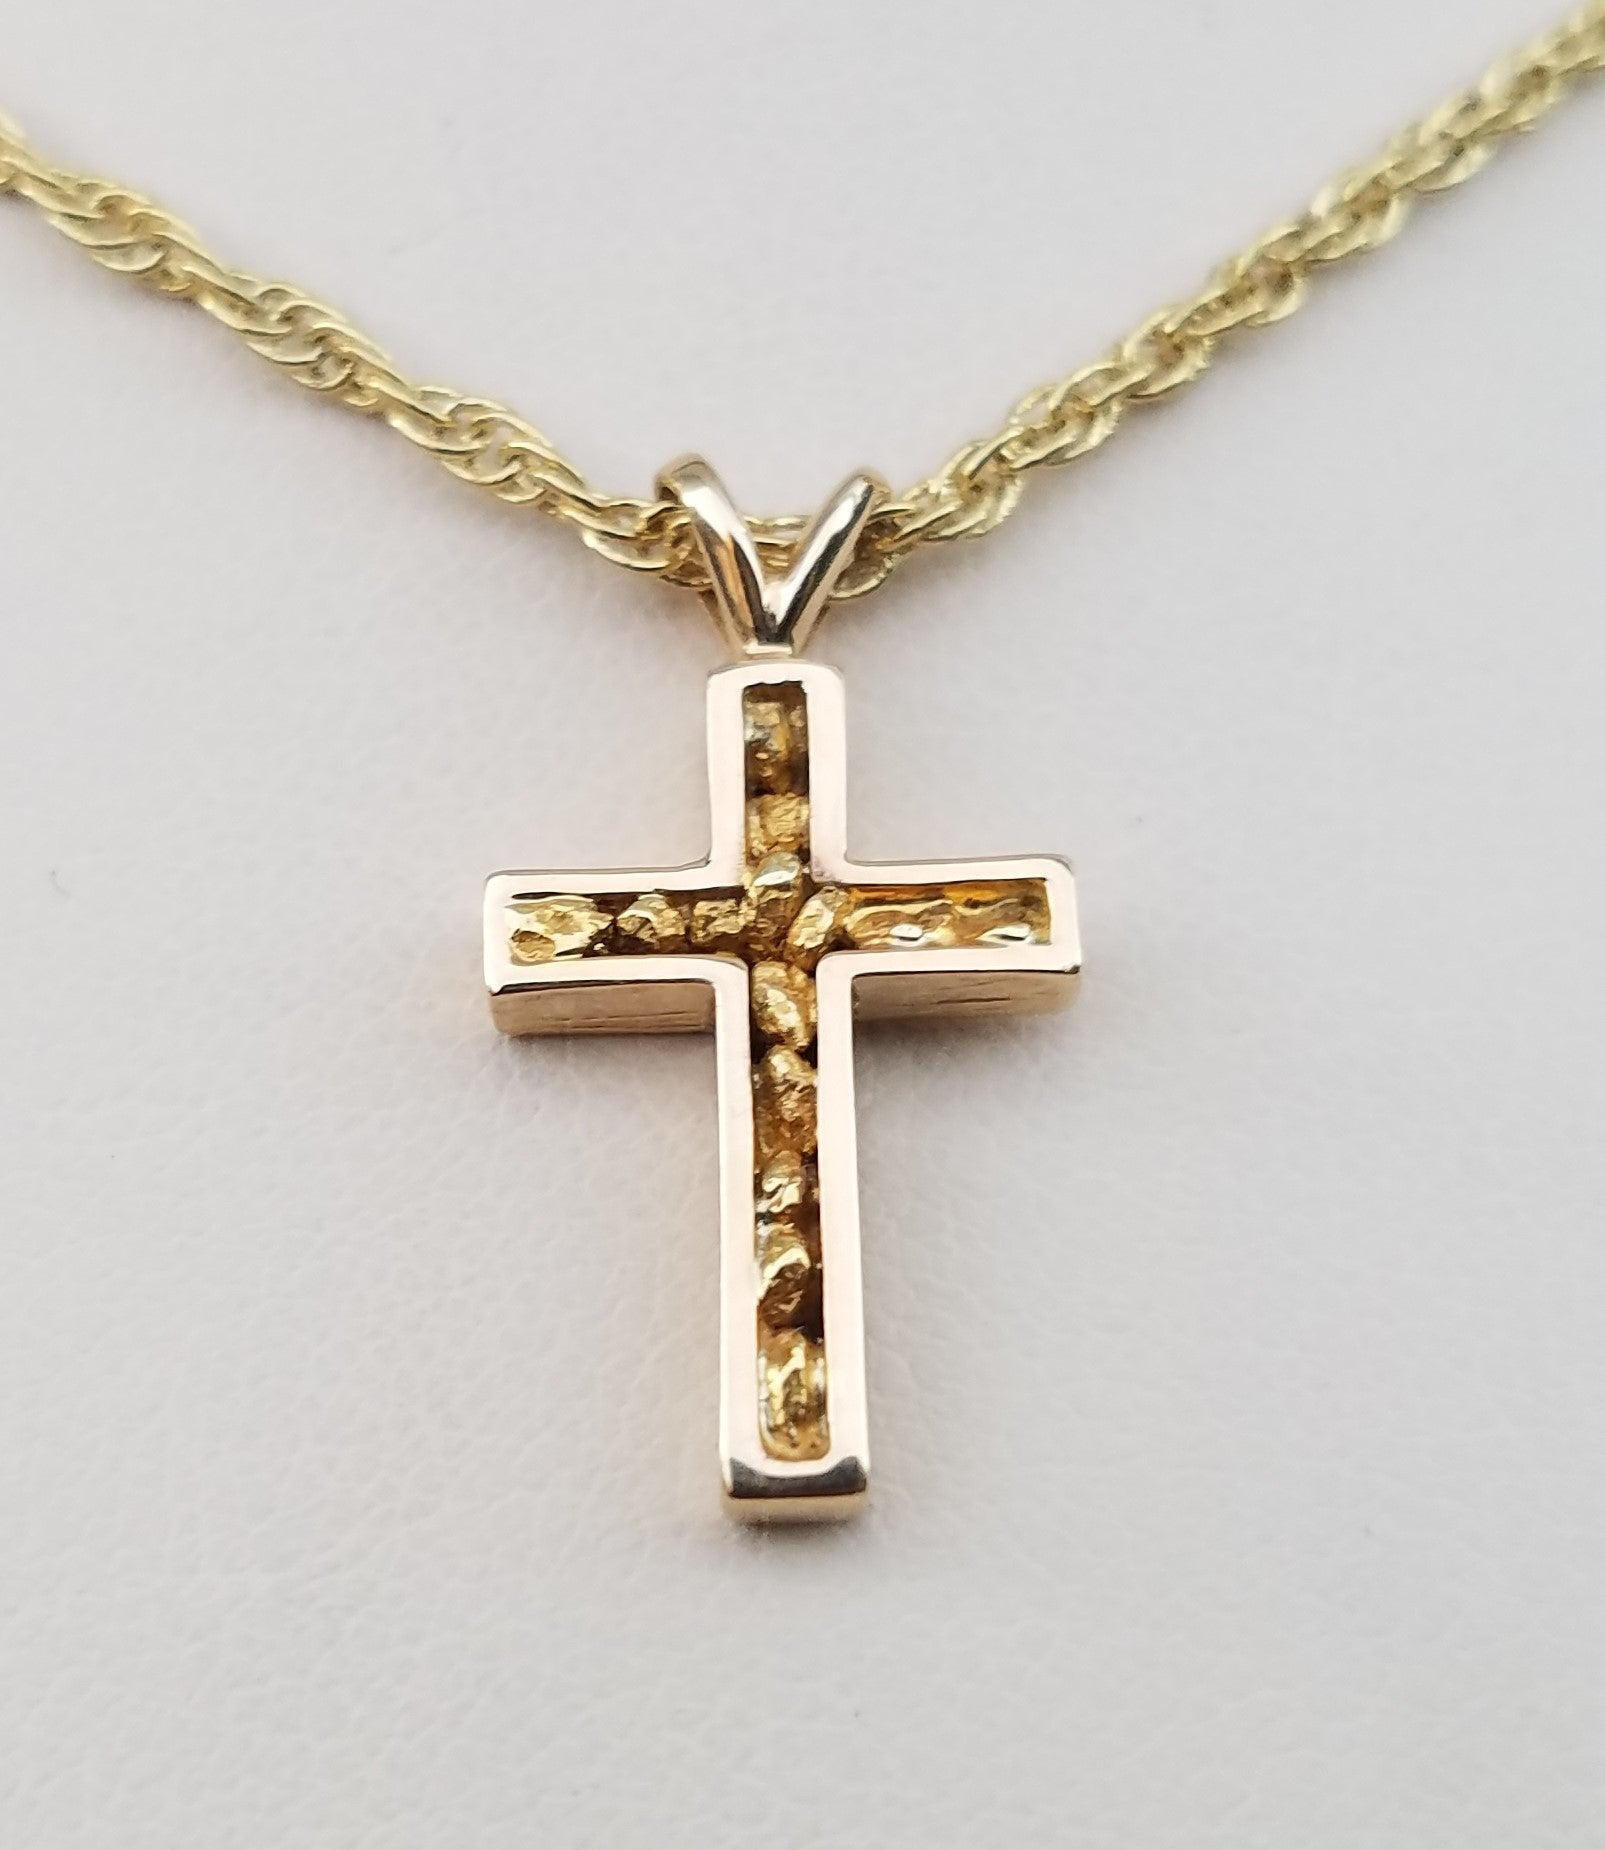 NATURAL GOLD NUGGET CROSS PENDANT